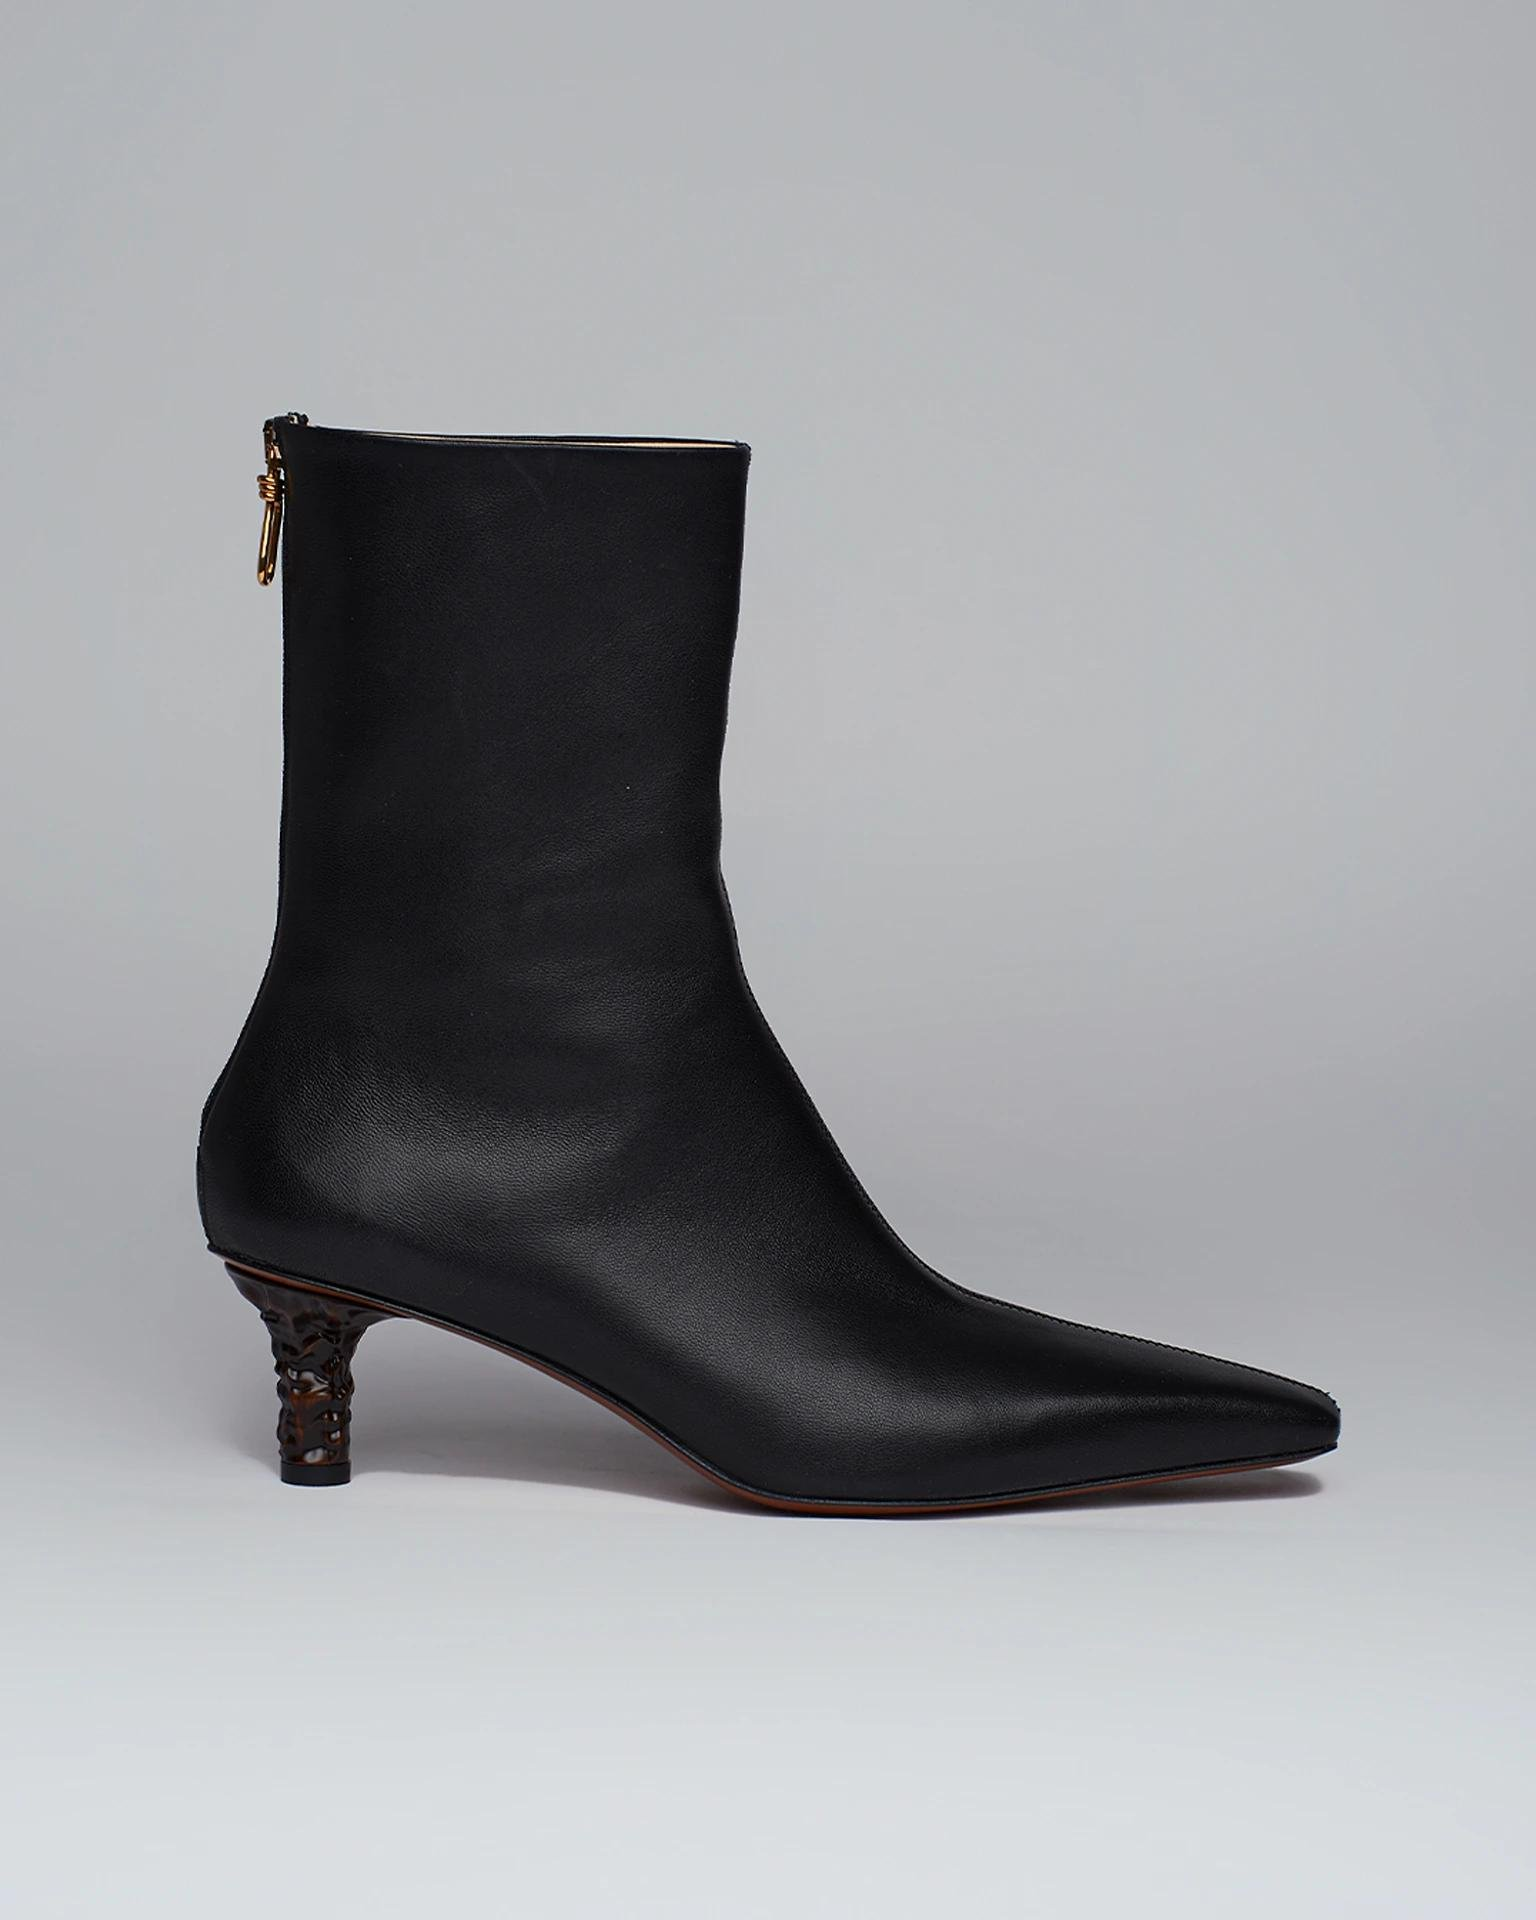 TALLI - Sculpted-heel leather boots - Black